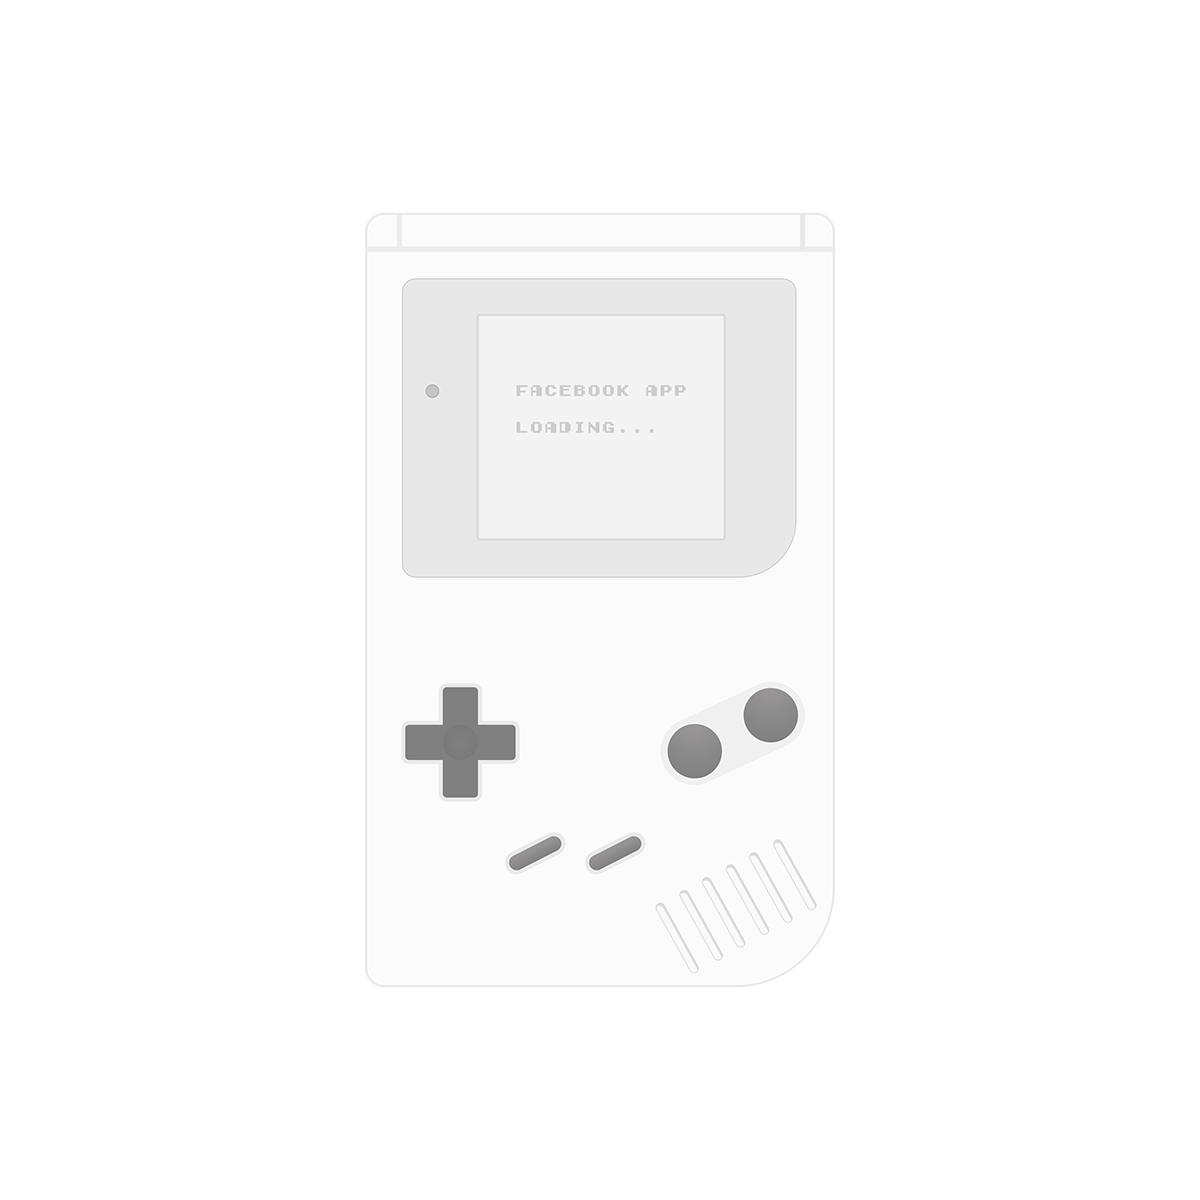 gameboy ui template on behance